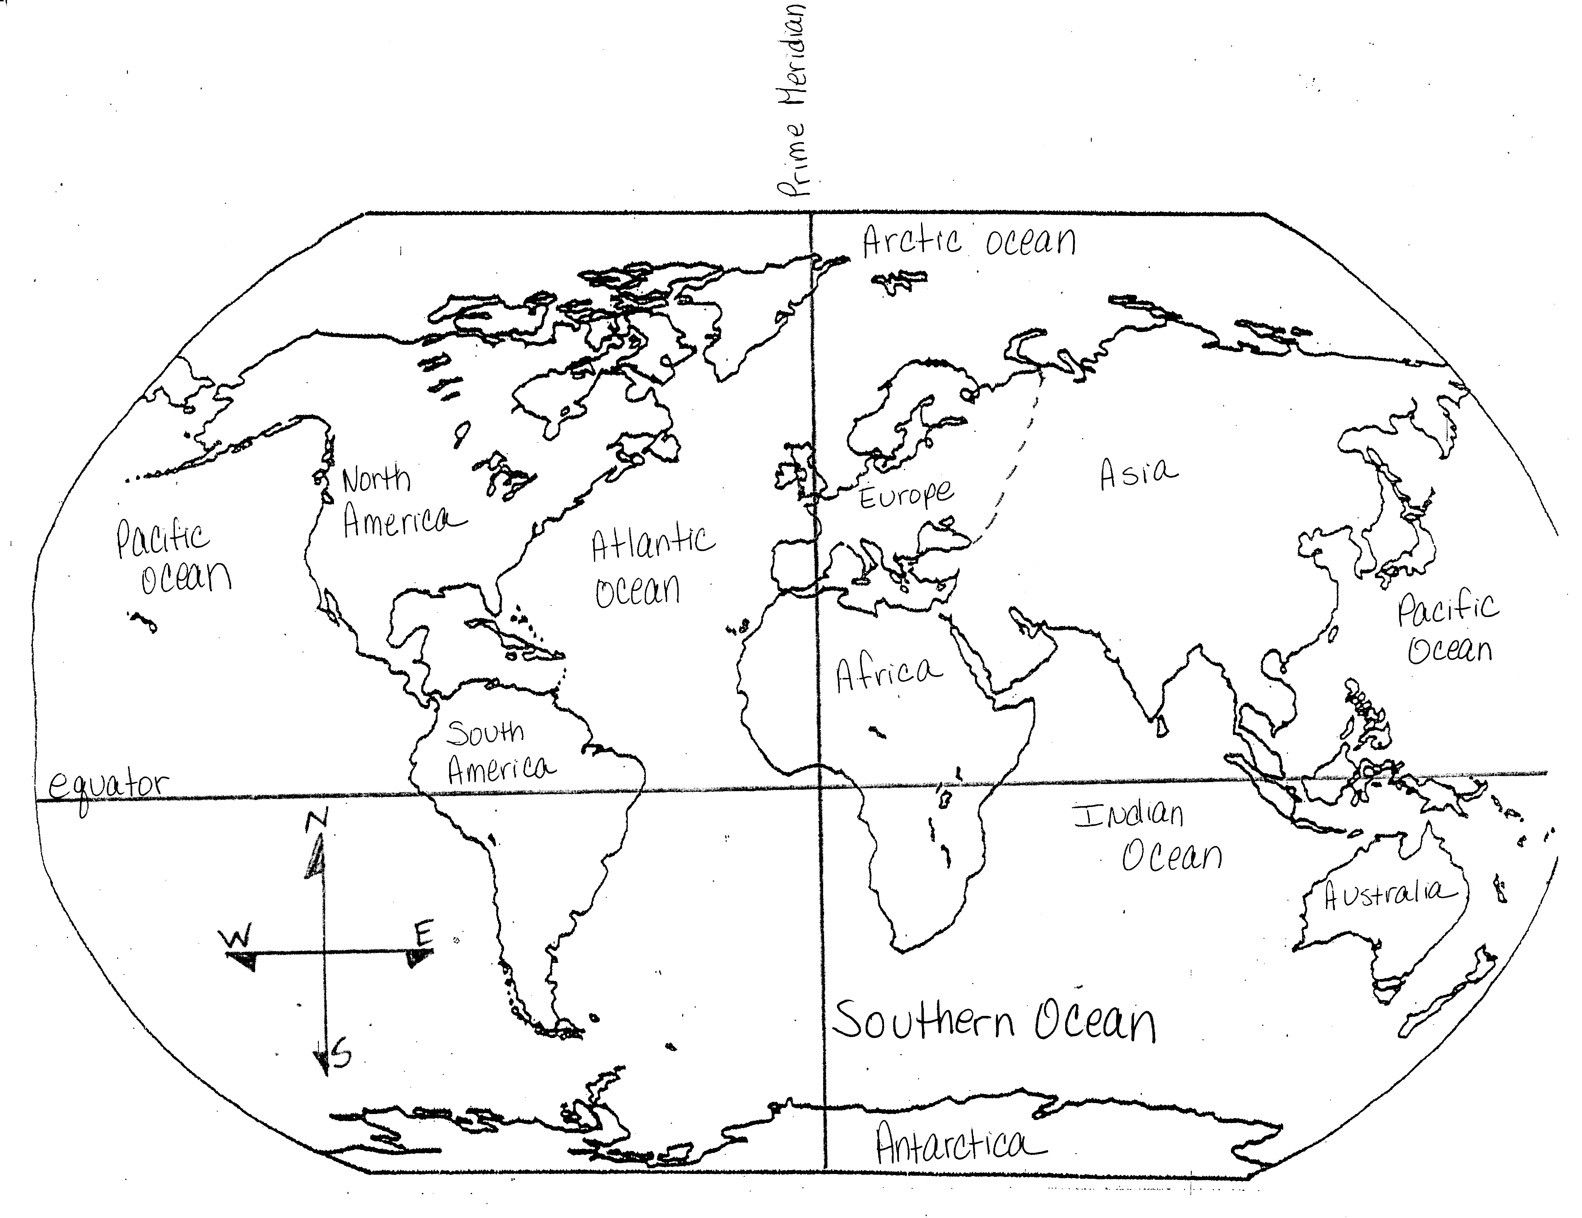 medium resolution of Equator Map Skills Worksheets   Printable Worksheets and Activities for  Teachers